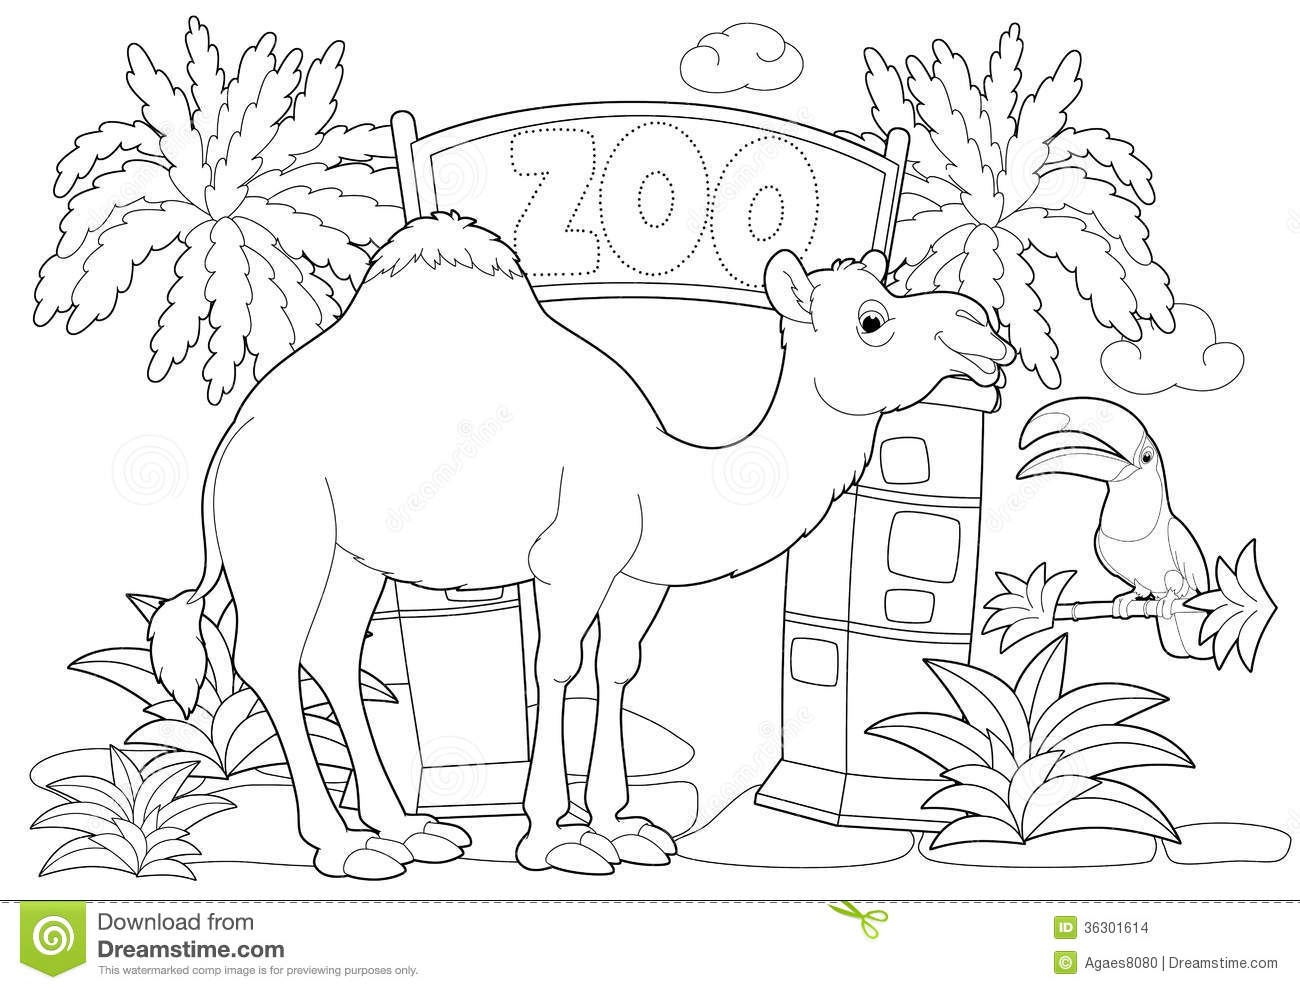 Toddler zoo coloring pages - Coloring Page The Zoo Illustration For The Children